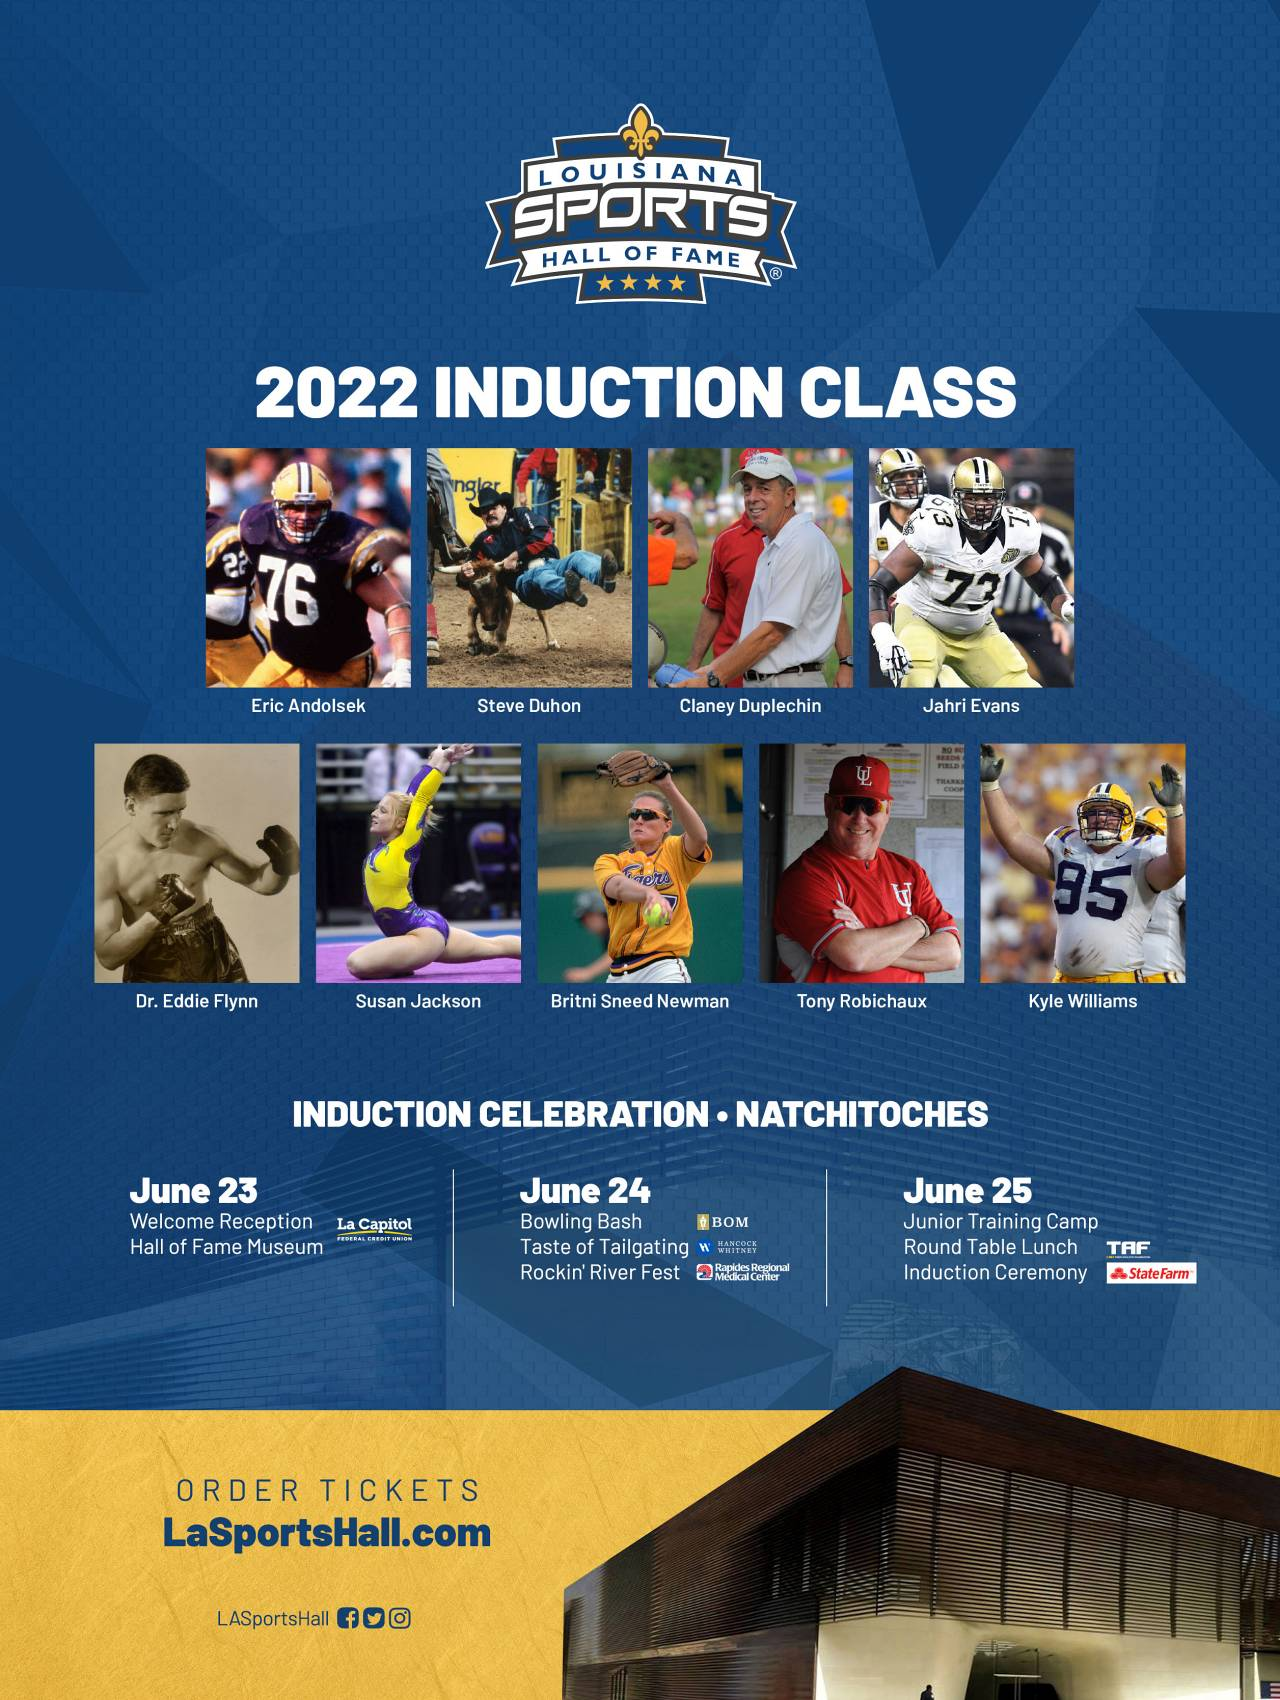 2022 competitive ballot inductees